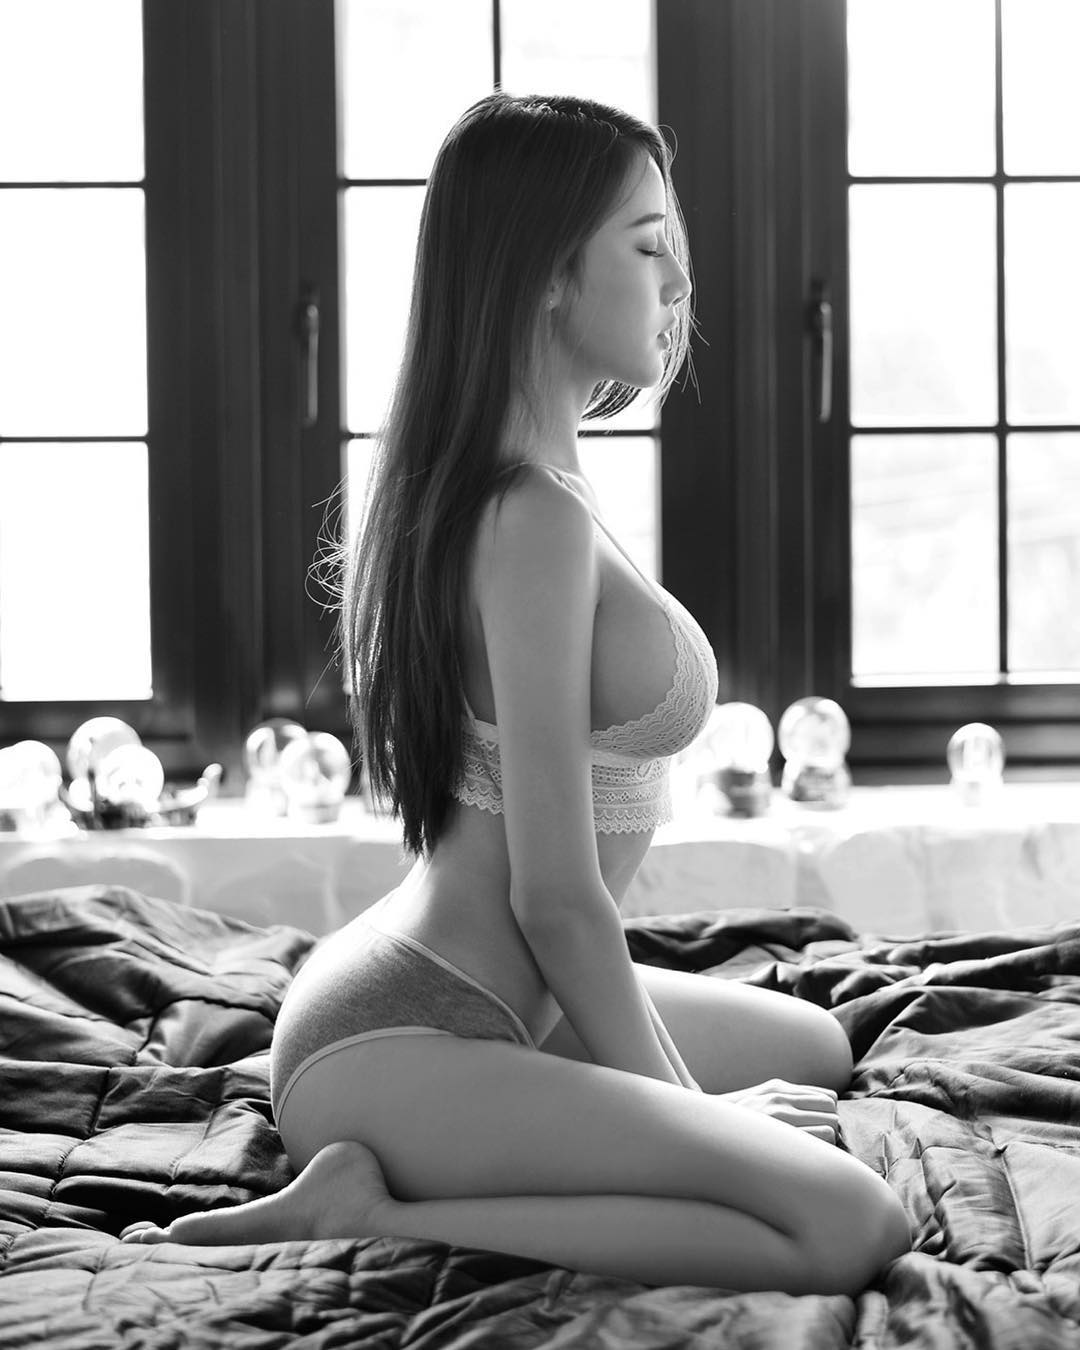 tai khoan instagram hot girl thai lan - Pichana Yoosuk - elle man 4